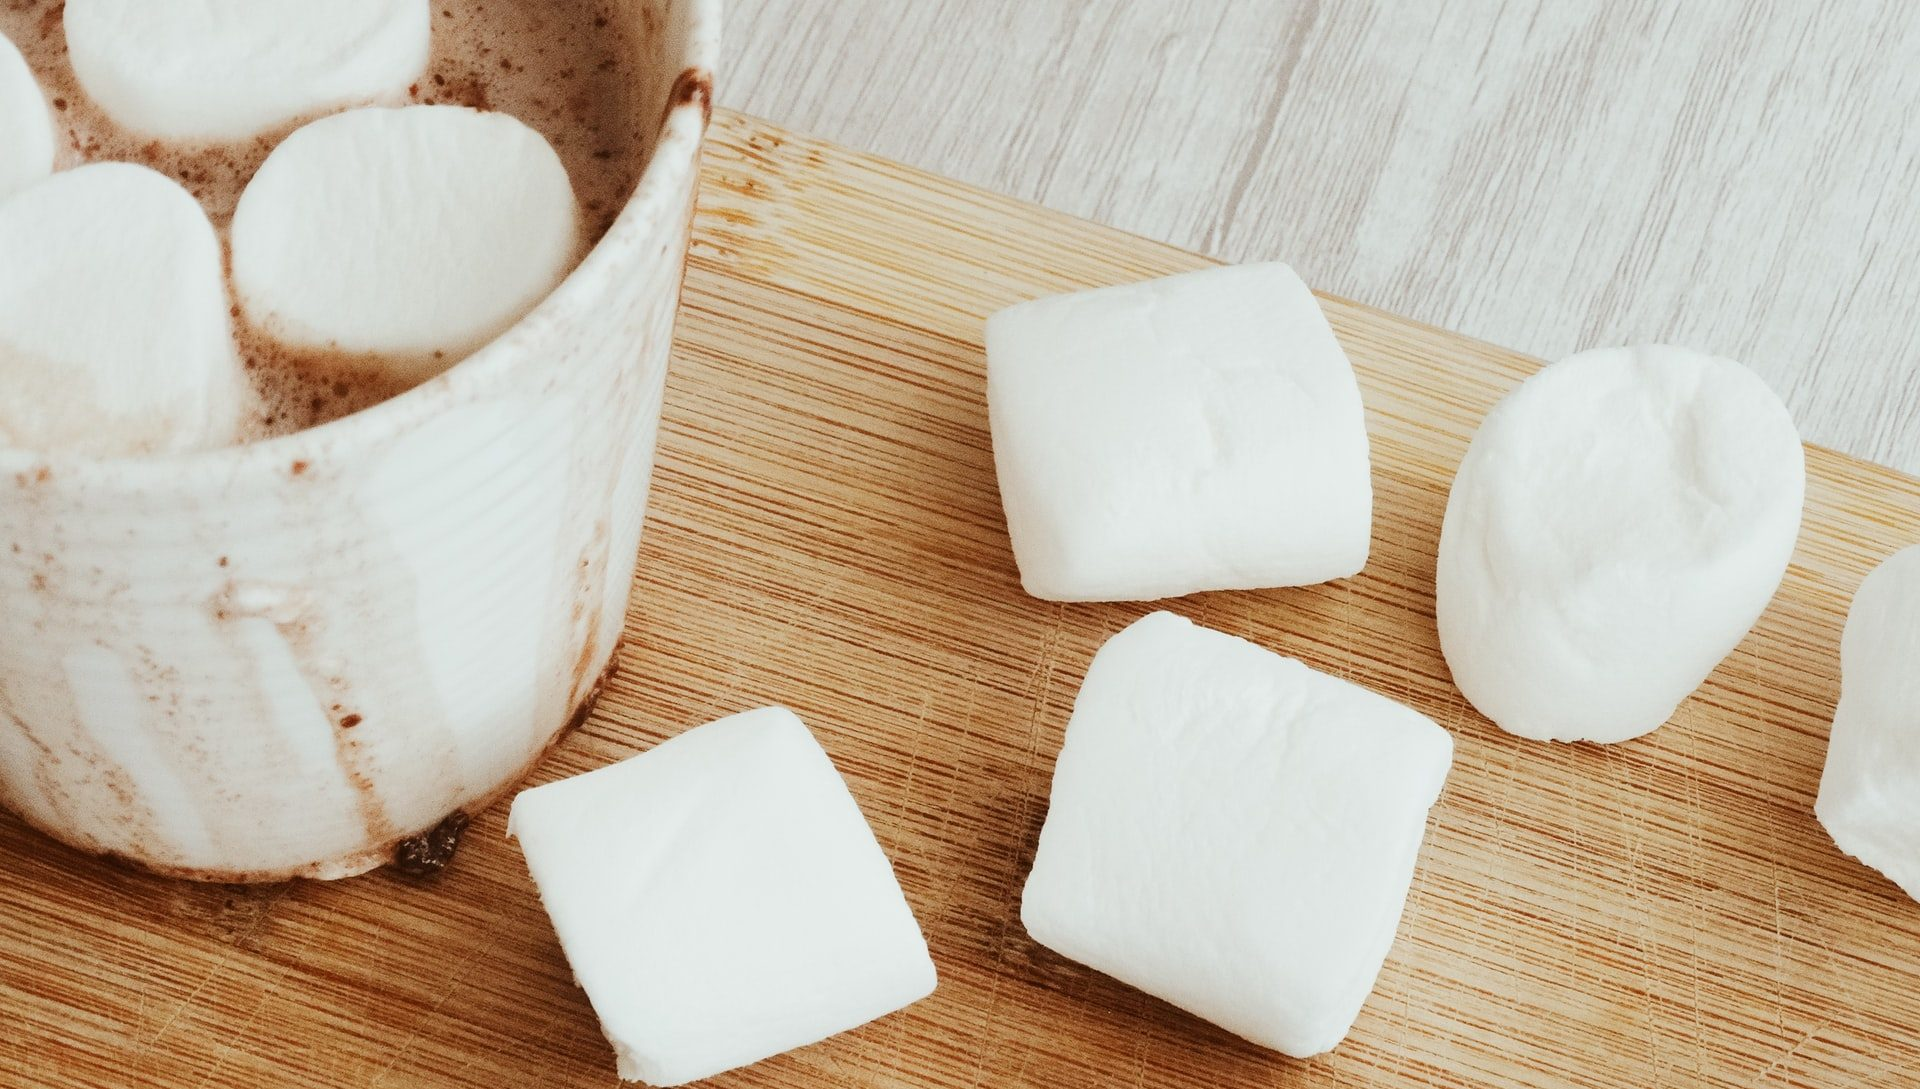 Marshmallow test' redux: Children show better self-control when they depend on each other